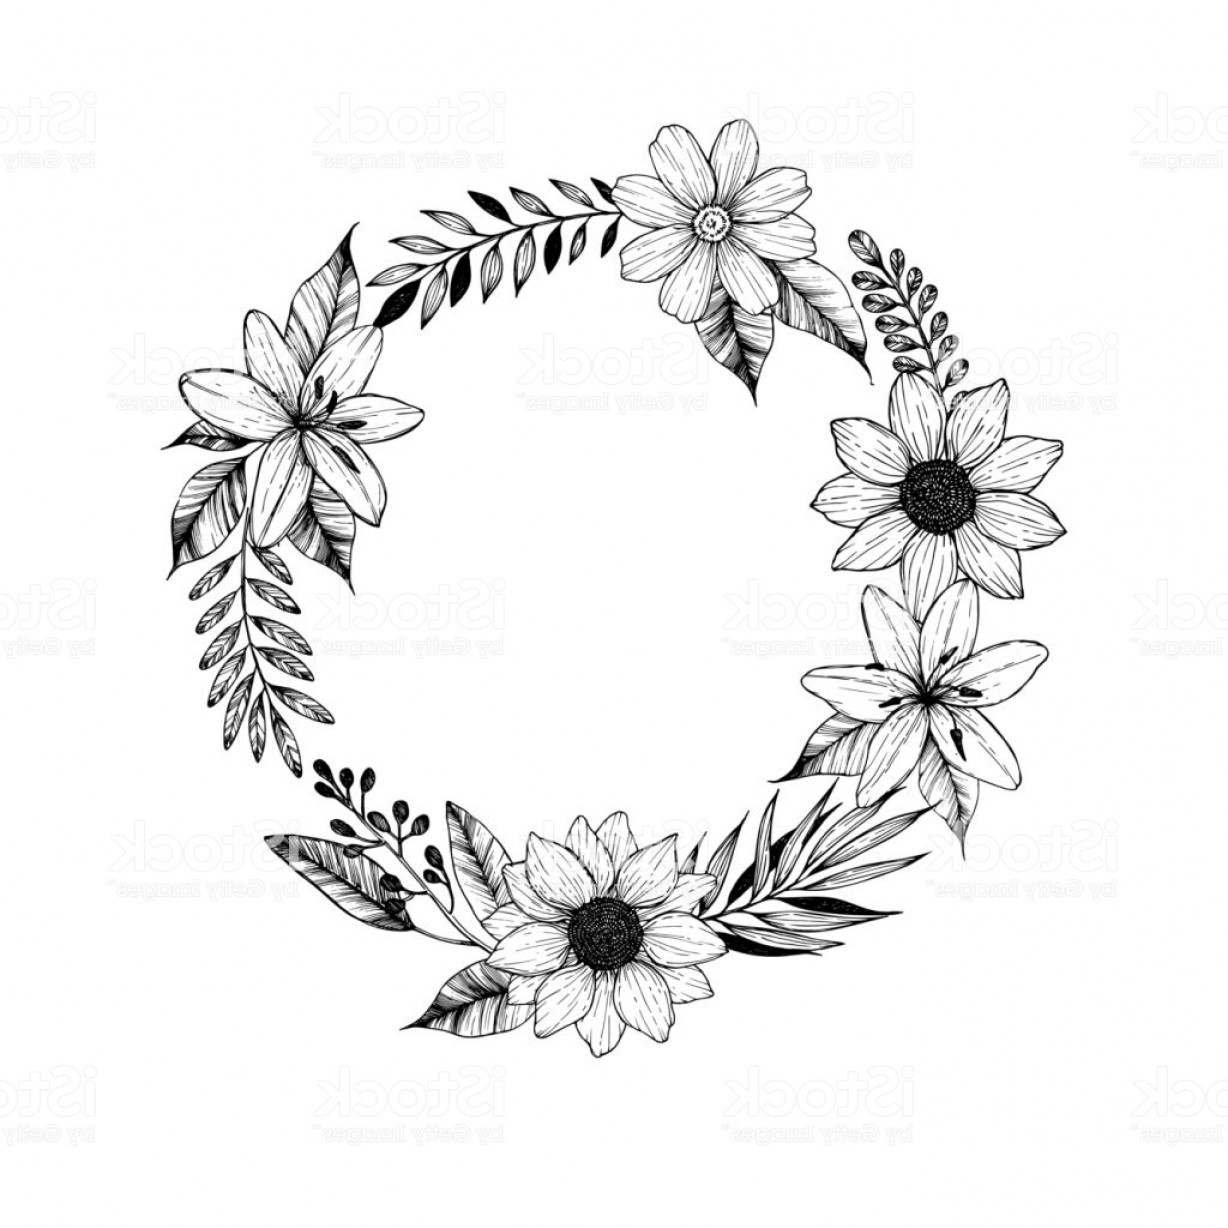 Vector Flower Wreaths In Black: Hand Drawn Vector Illustration Laurel Wreath With Black Flowers Leaves And Branches Gm